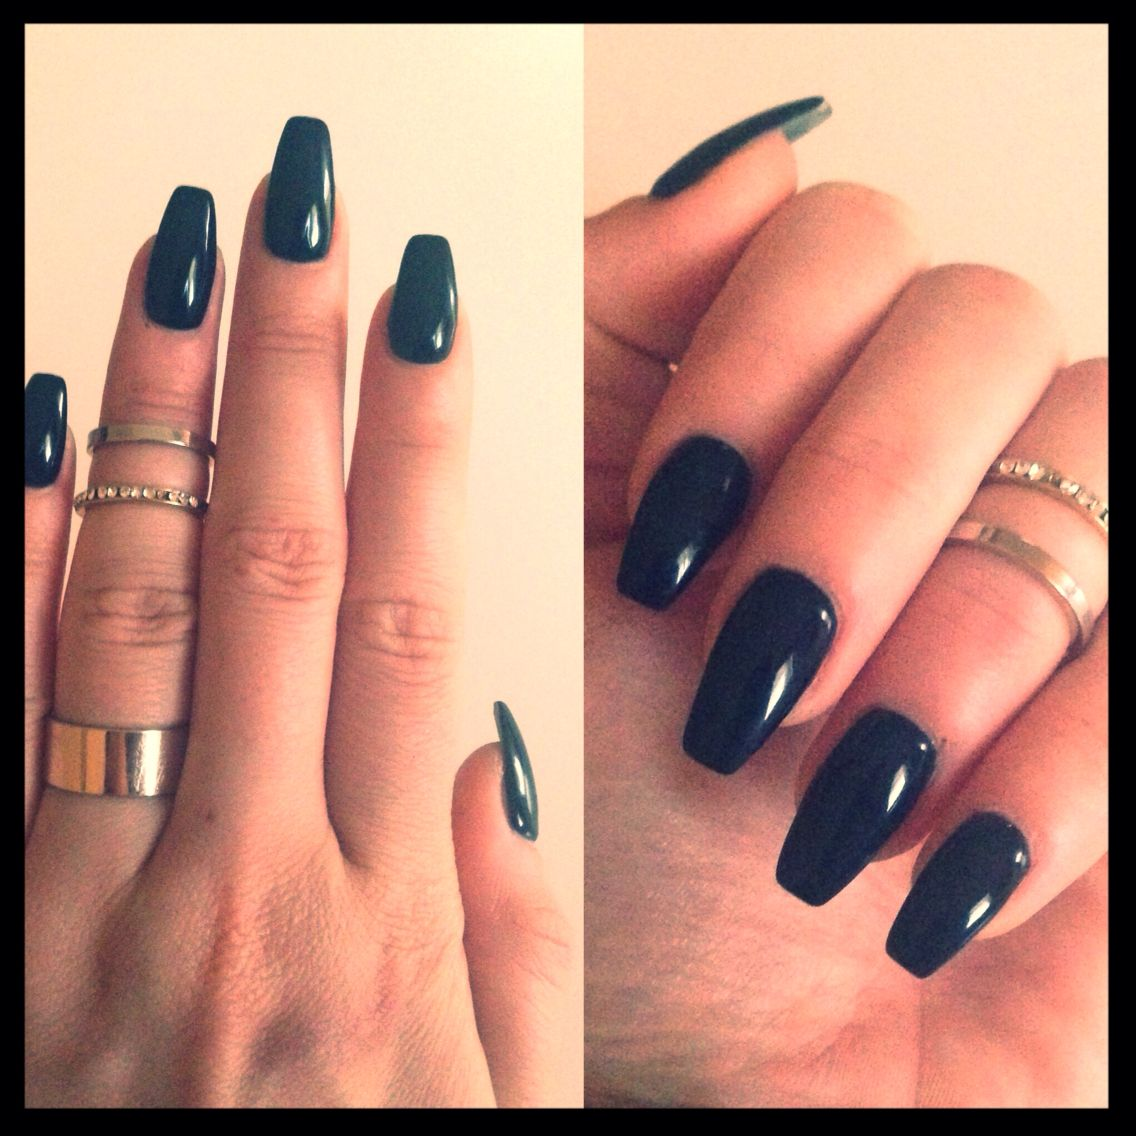 Black ballerina shaped nails | Nails | Pinterest | Haar und beauty ...